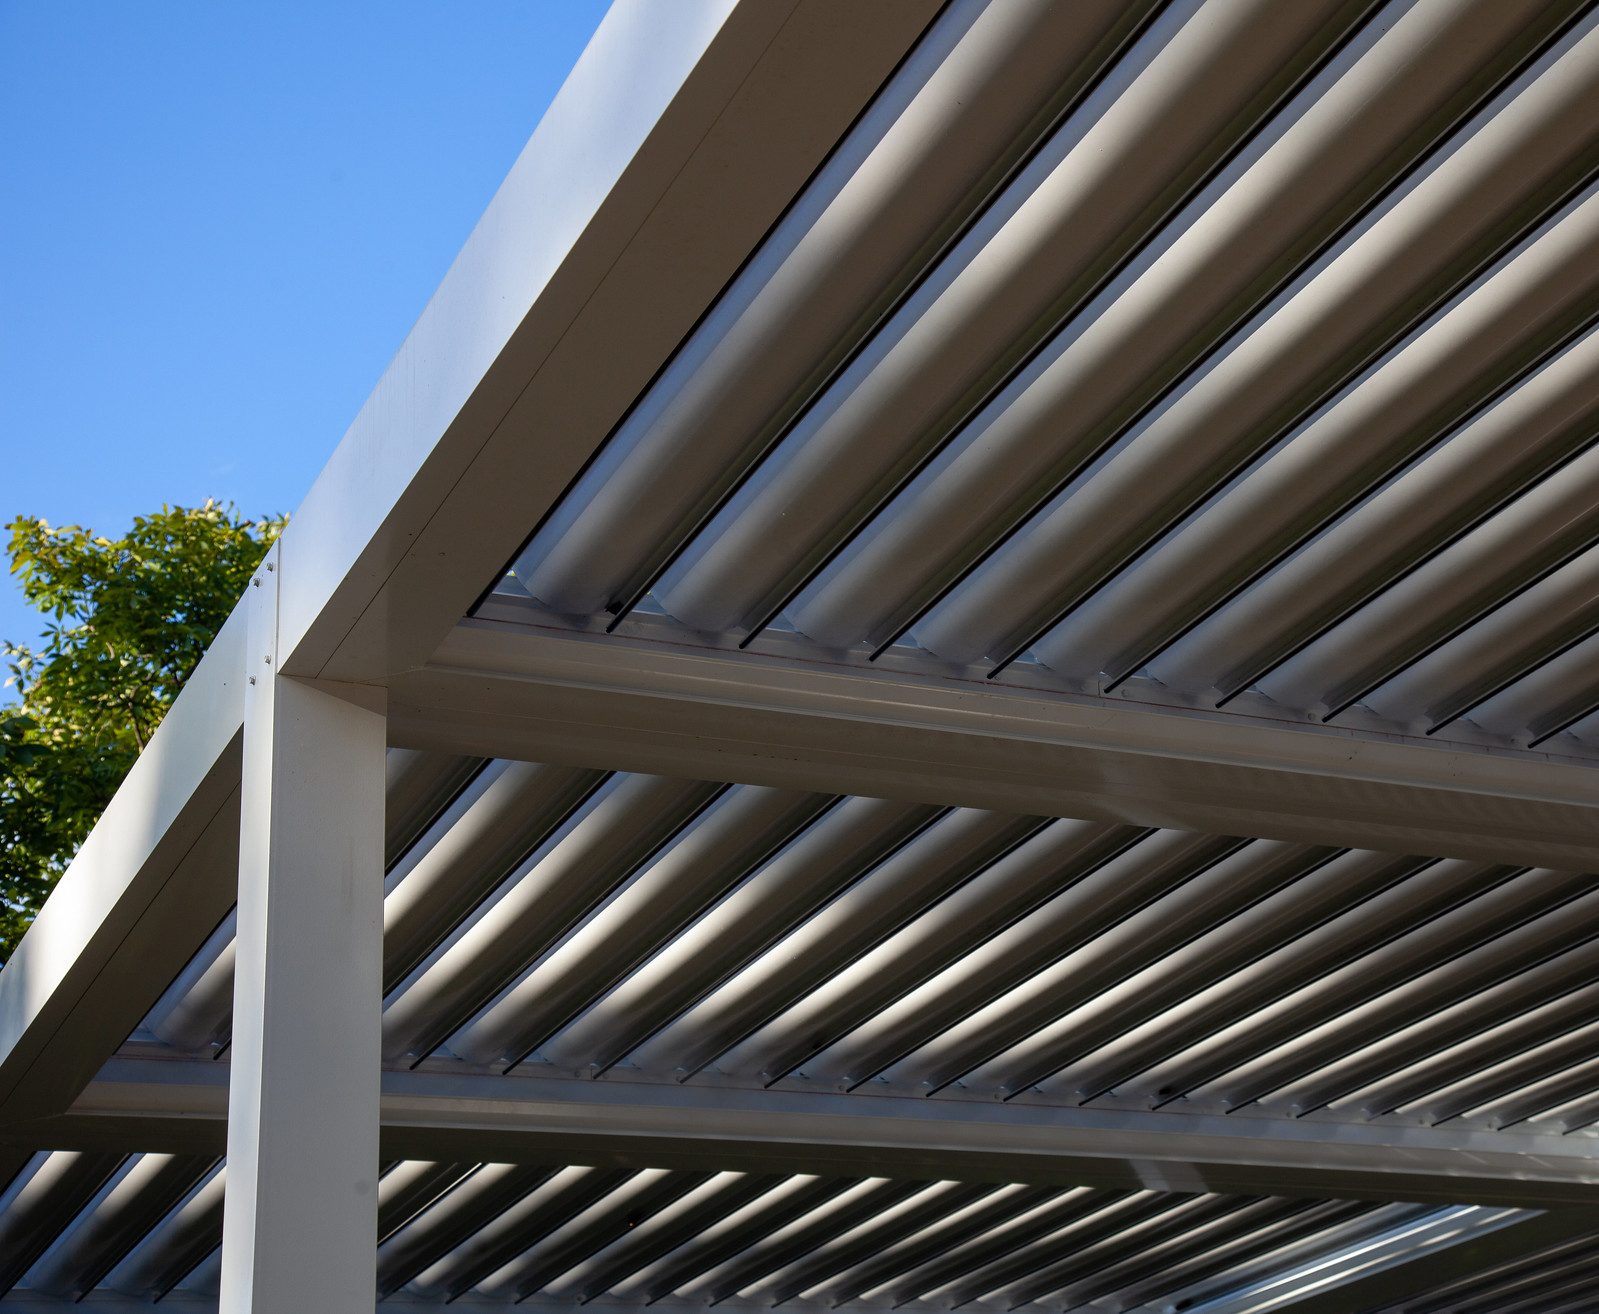 Bronze Roof-Louvers Open